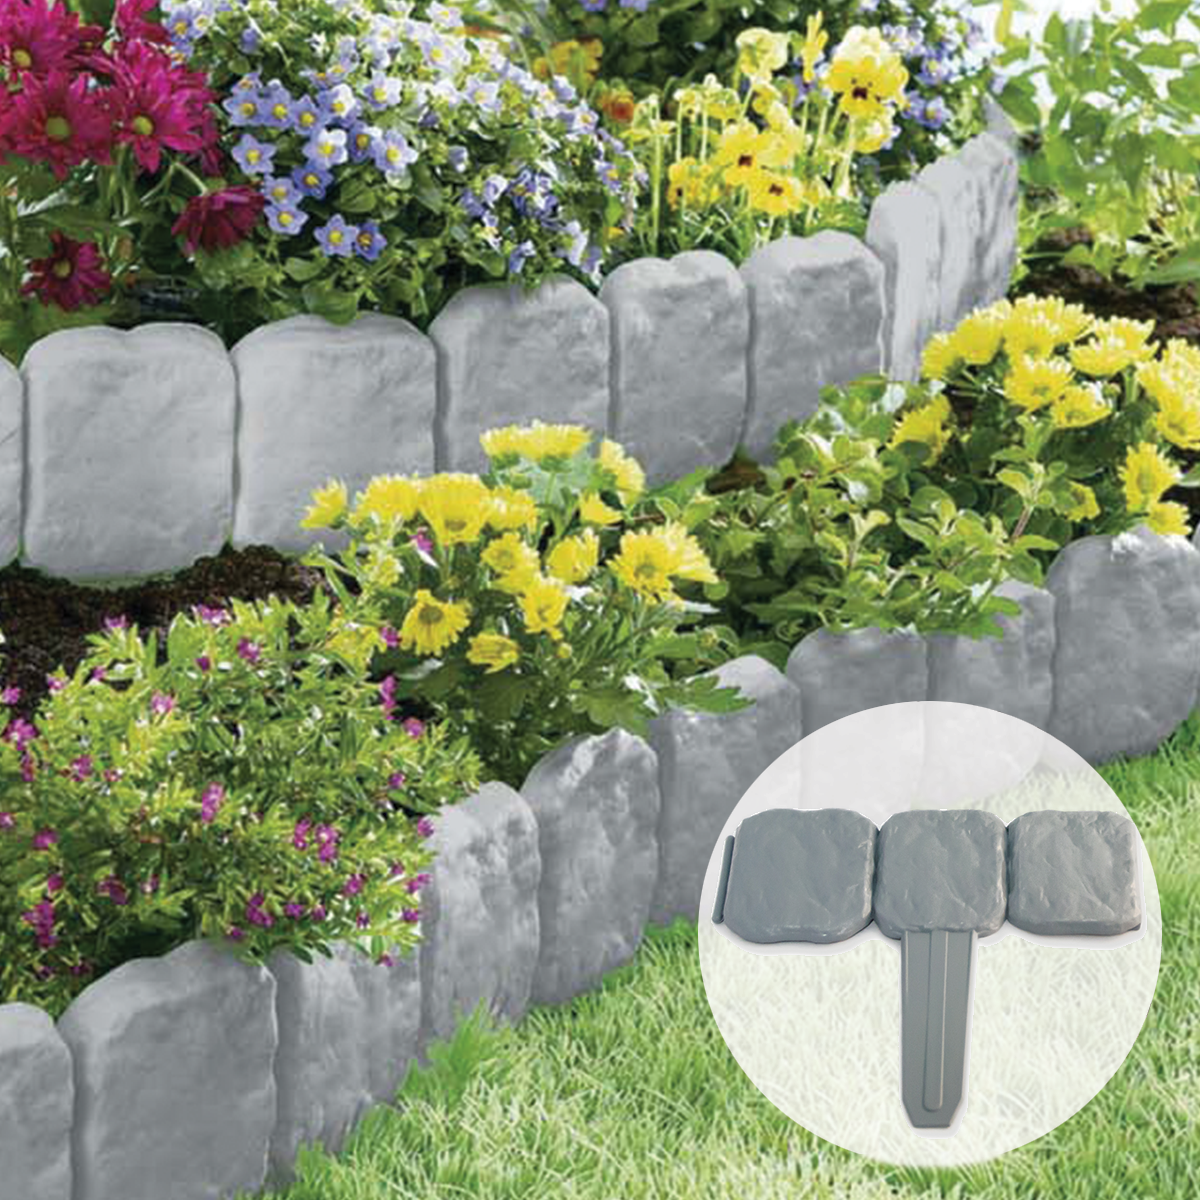 GREY STONE SLAB EFFECT GARDEN BORDER PLASTIC EDGING FLOWER BED GRASS LAWN LINER